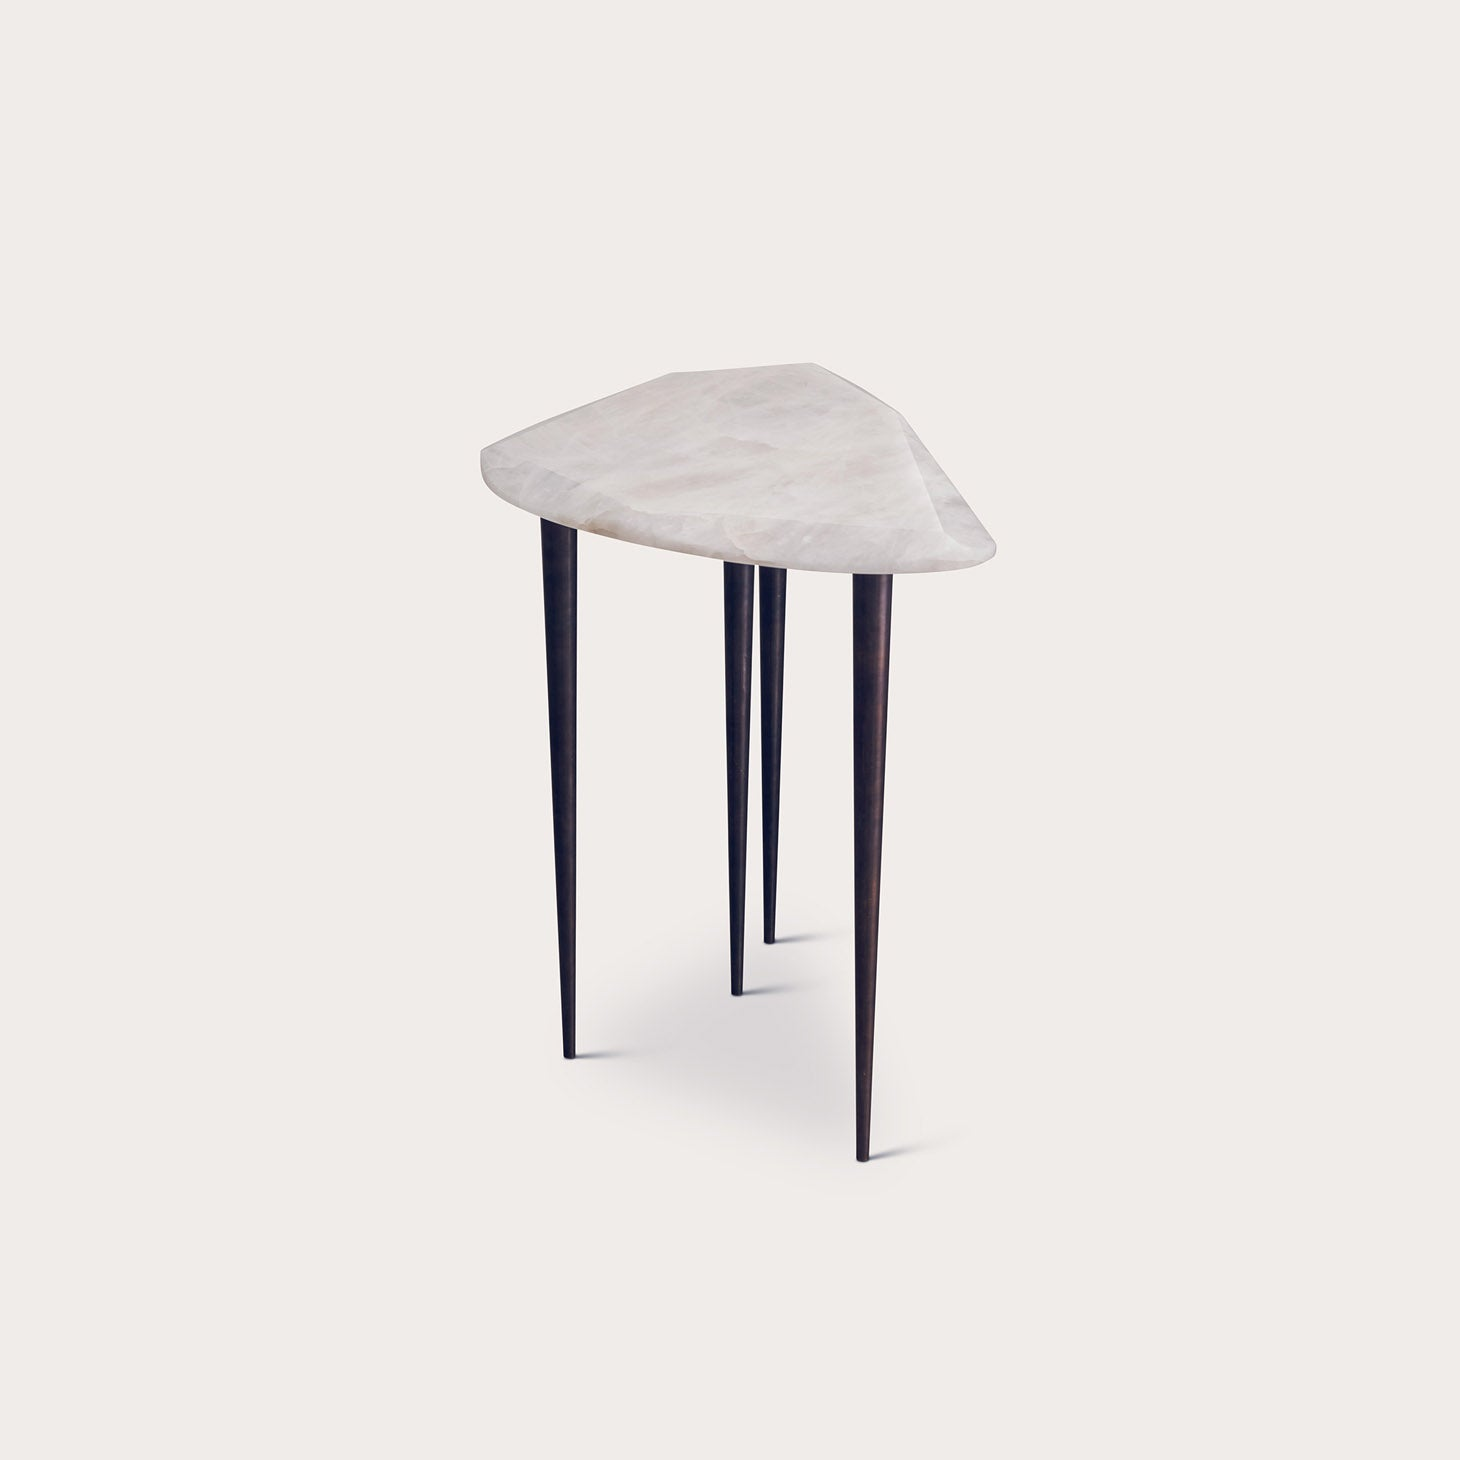 Landutim Table Tables Simone Coste Designer Furniture Sku: 992-230-10045